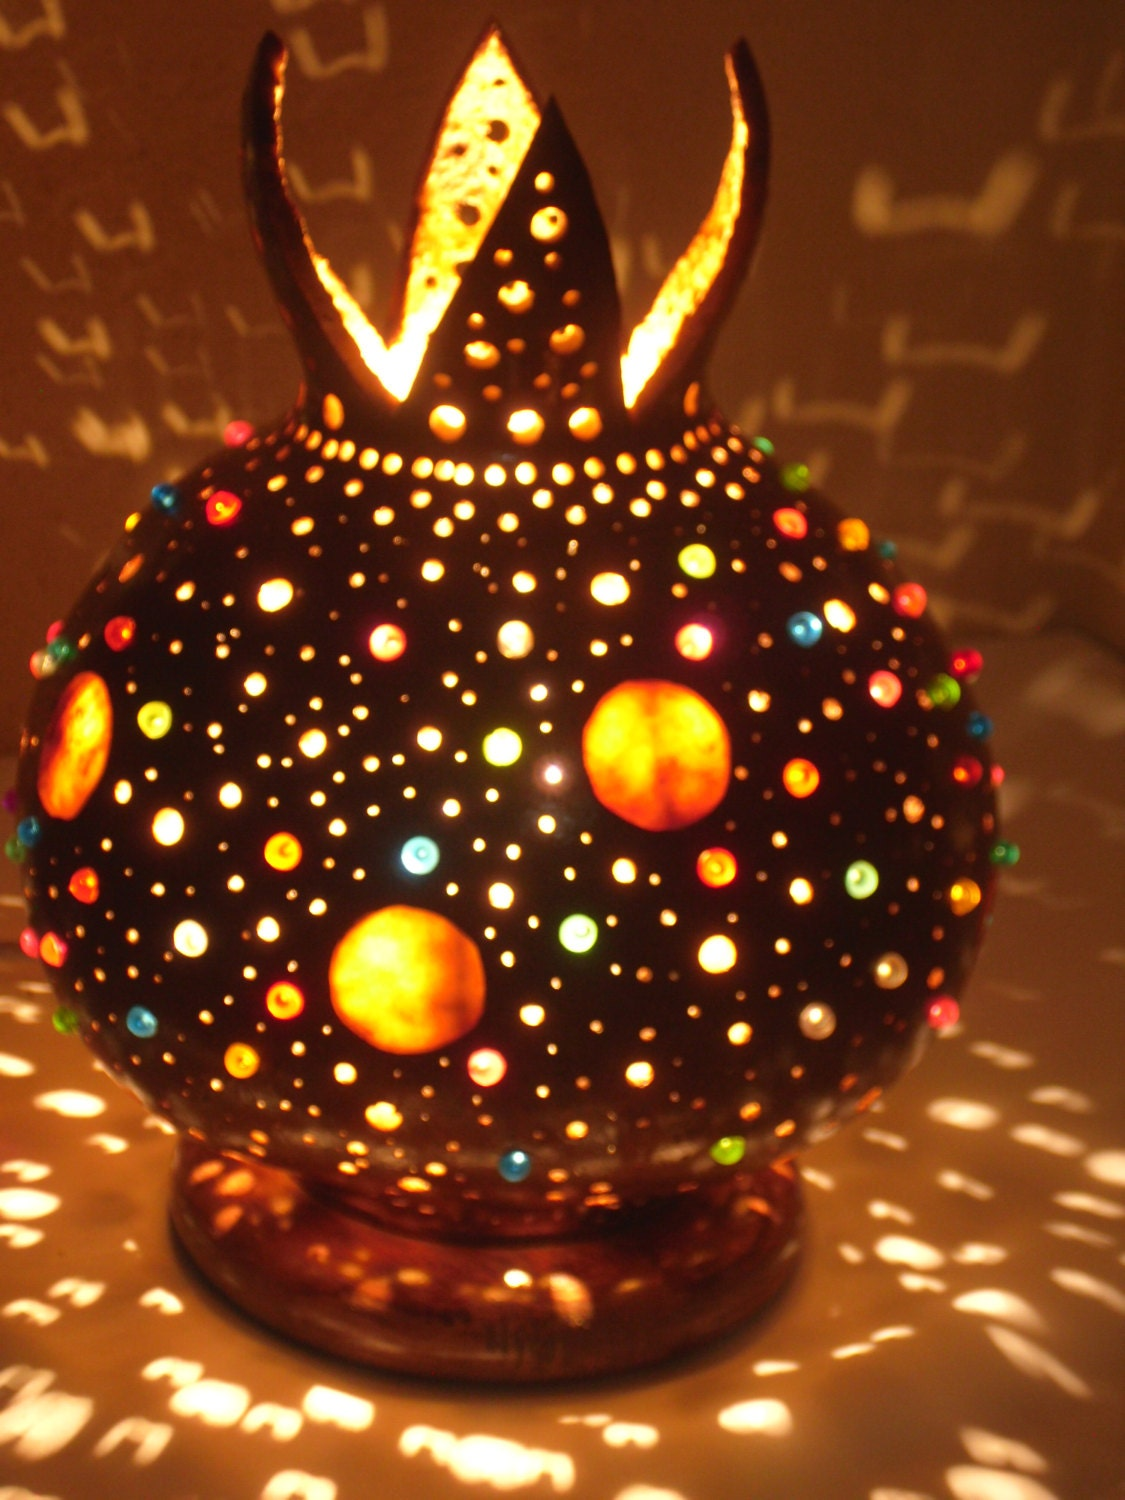 100 Handmade Gifts Under Five Dollars: 100% HANDMADE Gourd Lamp Interiorstrend Design Handcrafted